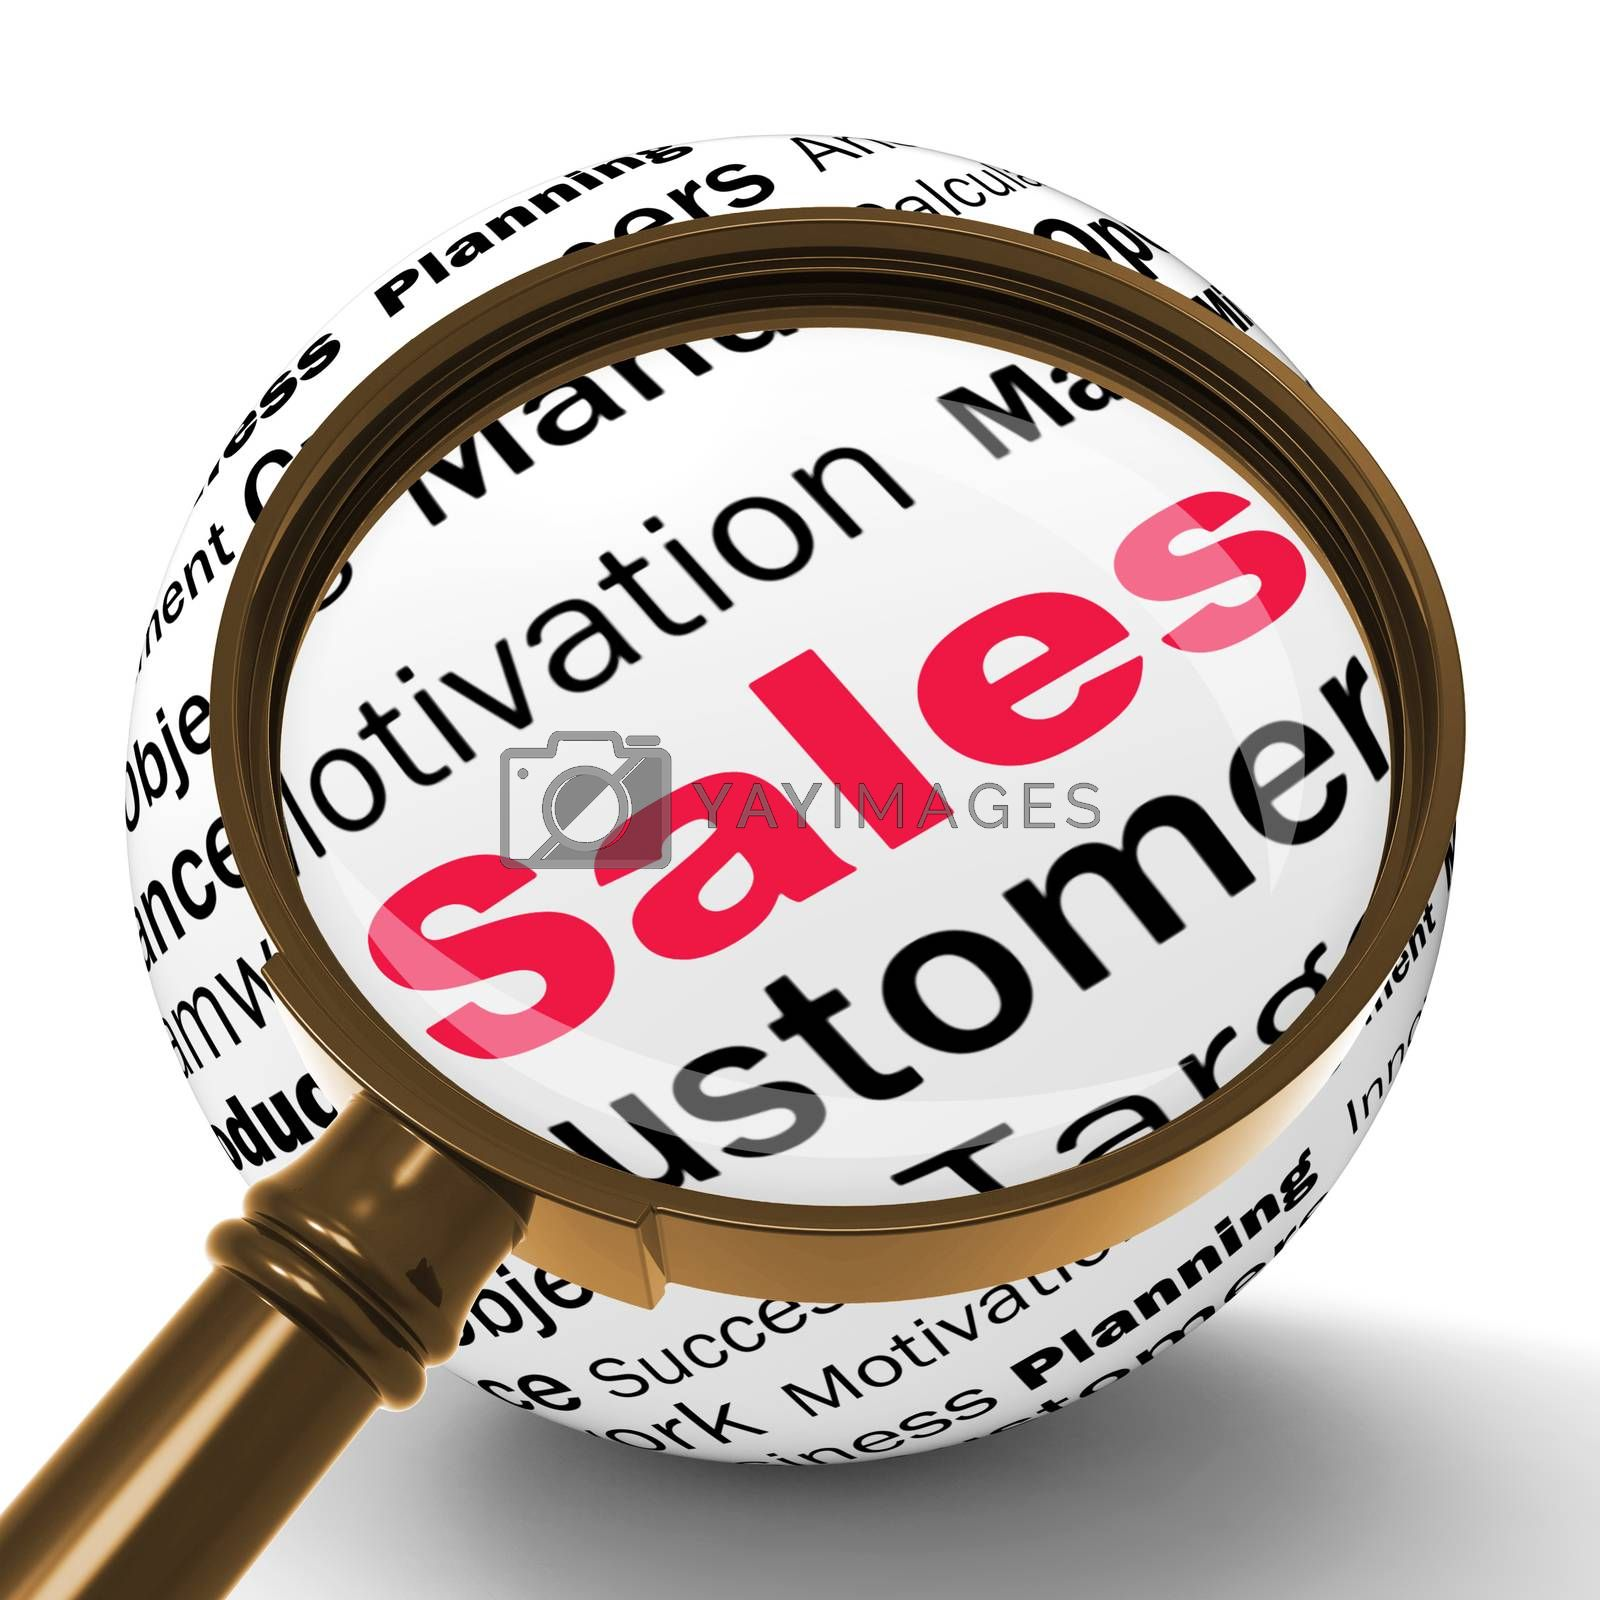 Sales Magnifier Definition Means Price Reduction And Clearances by stuartmiles